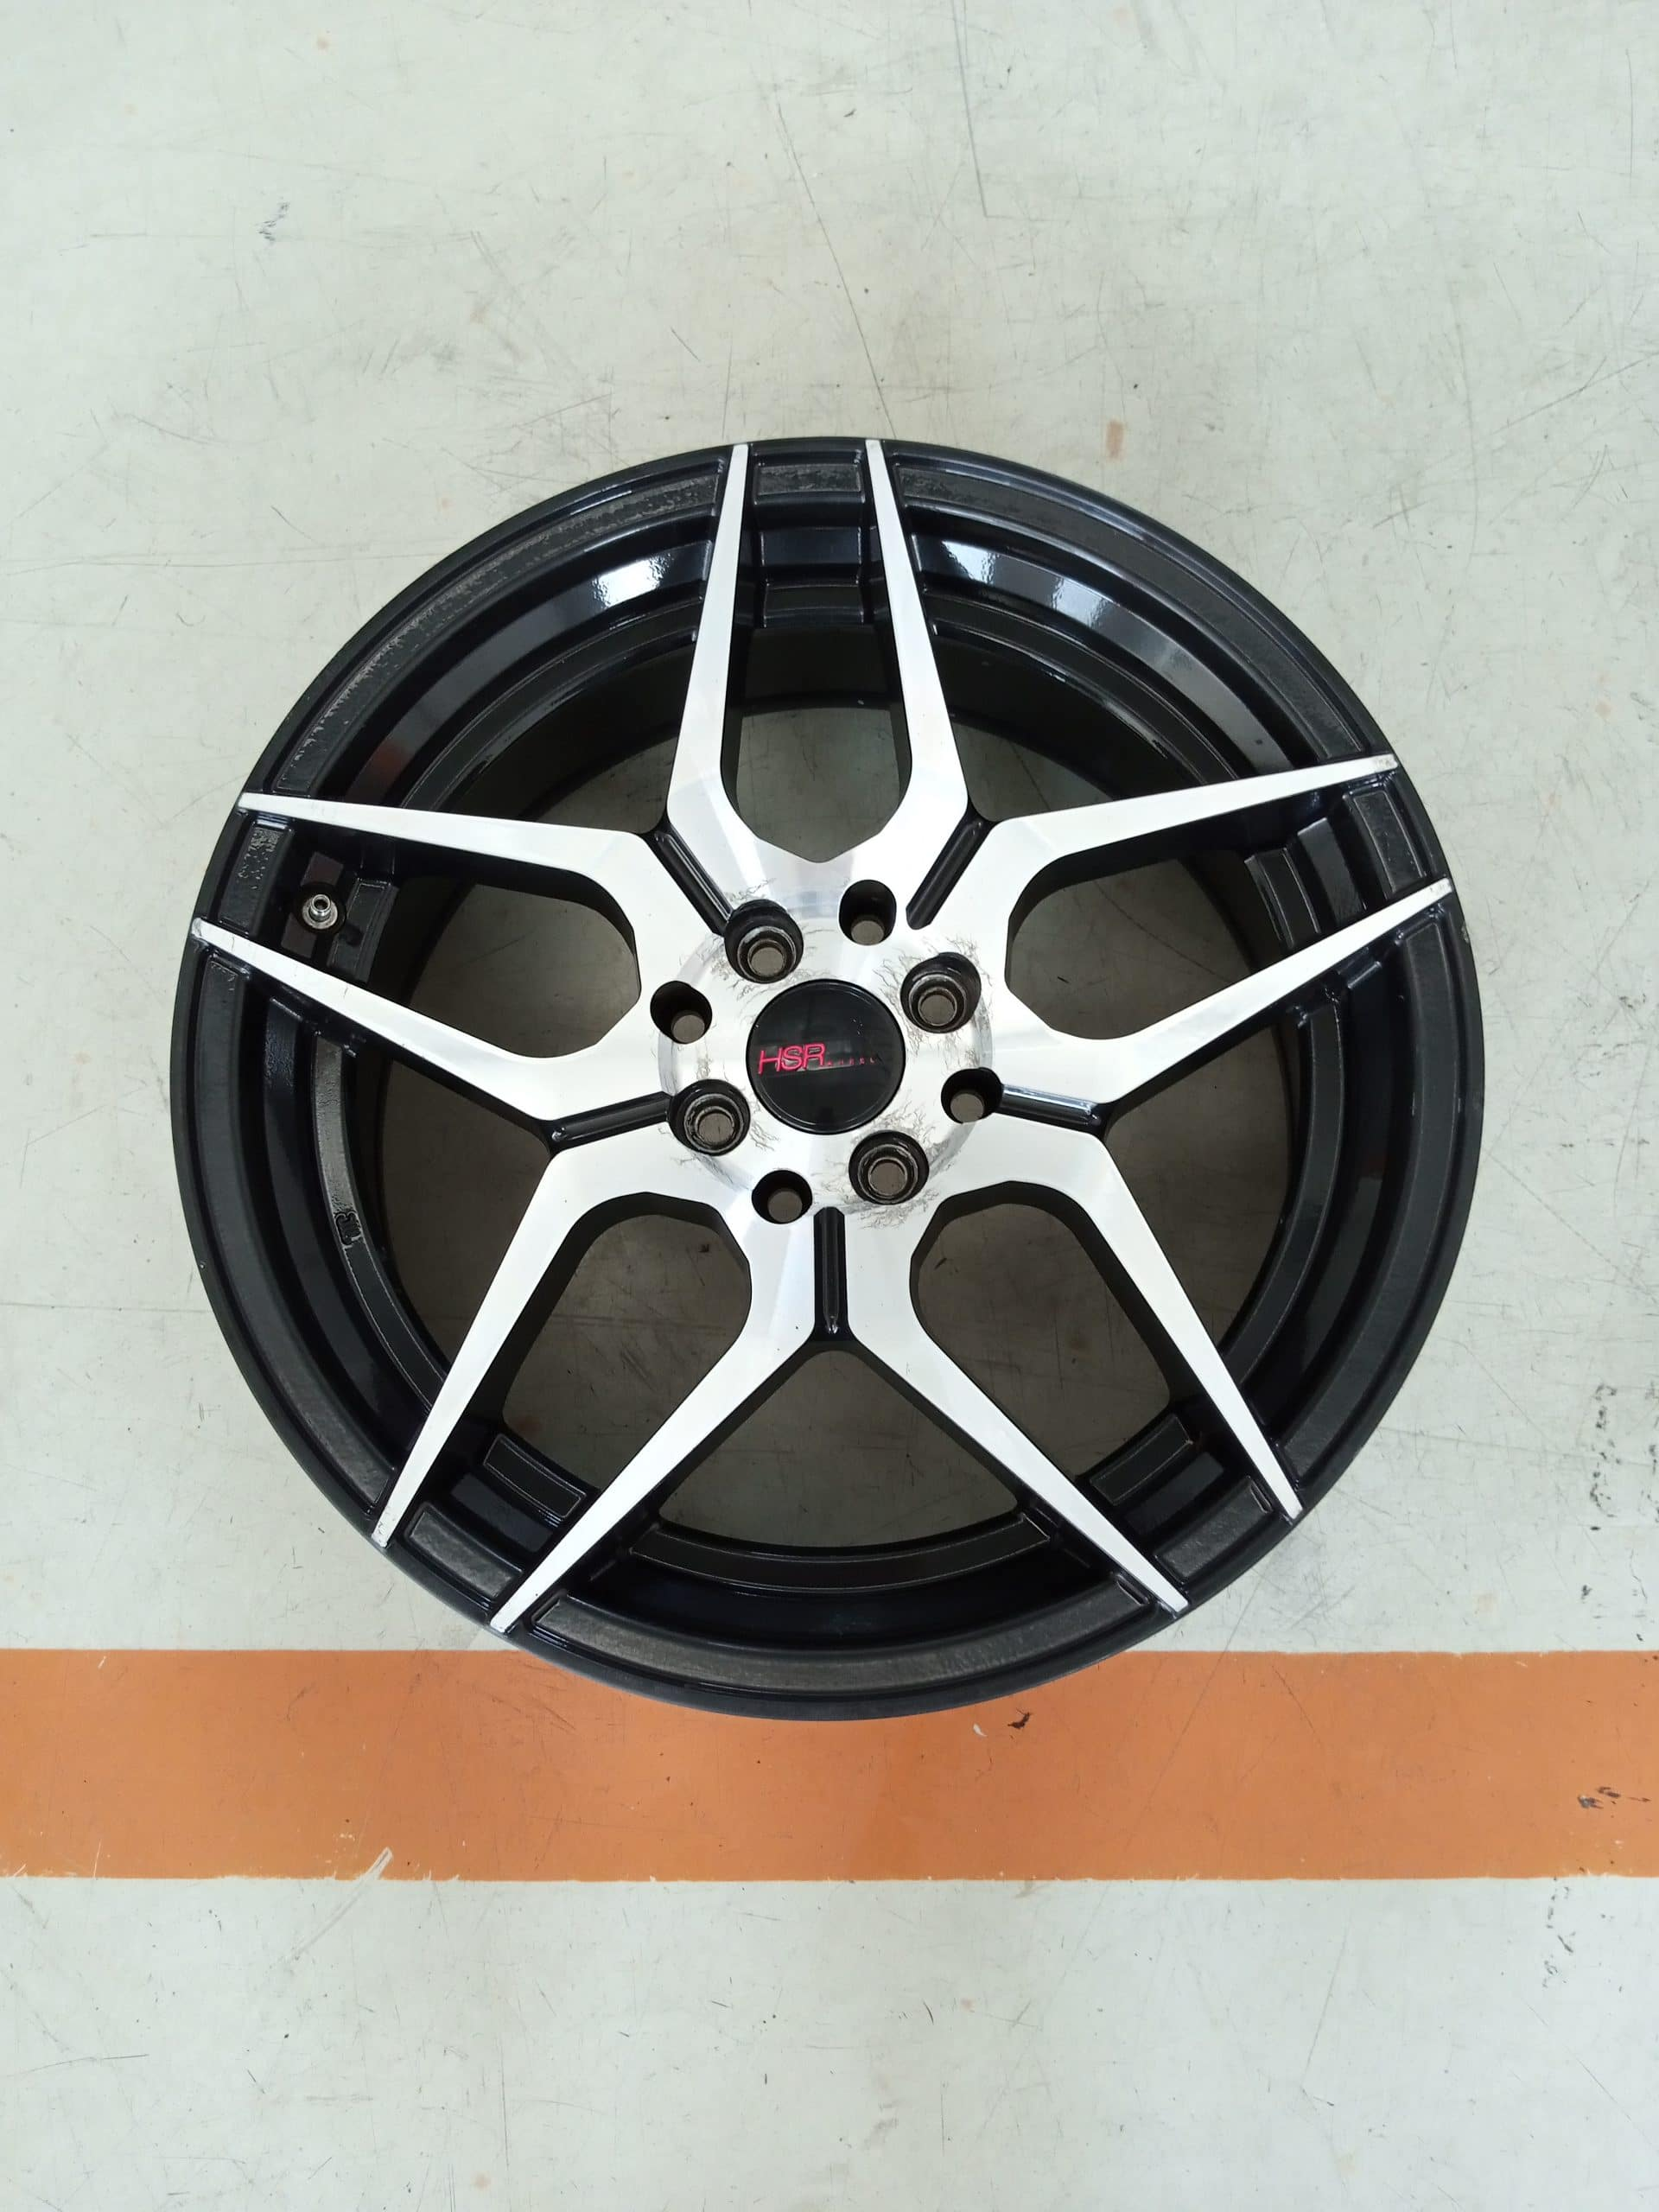 VELG BEKAS TYPE GREECE RING 17×7,5 H:8×100/114,3 ET:45